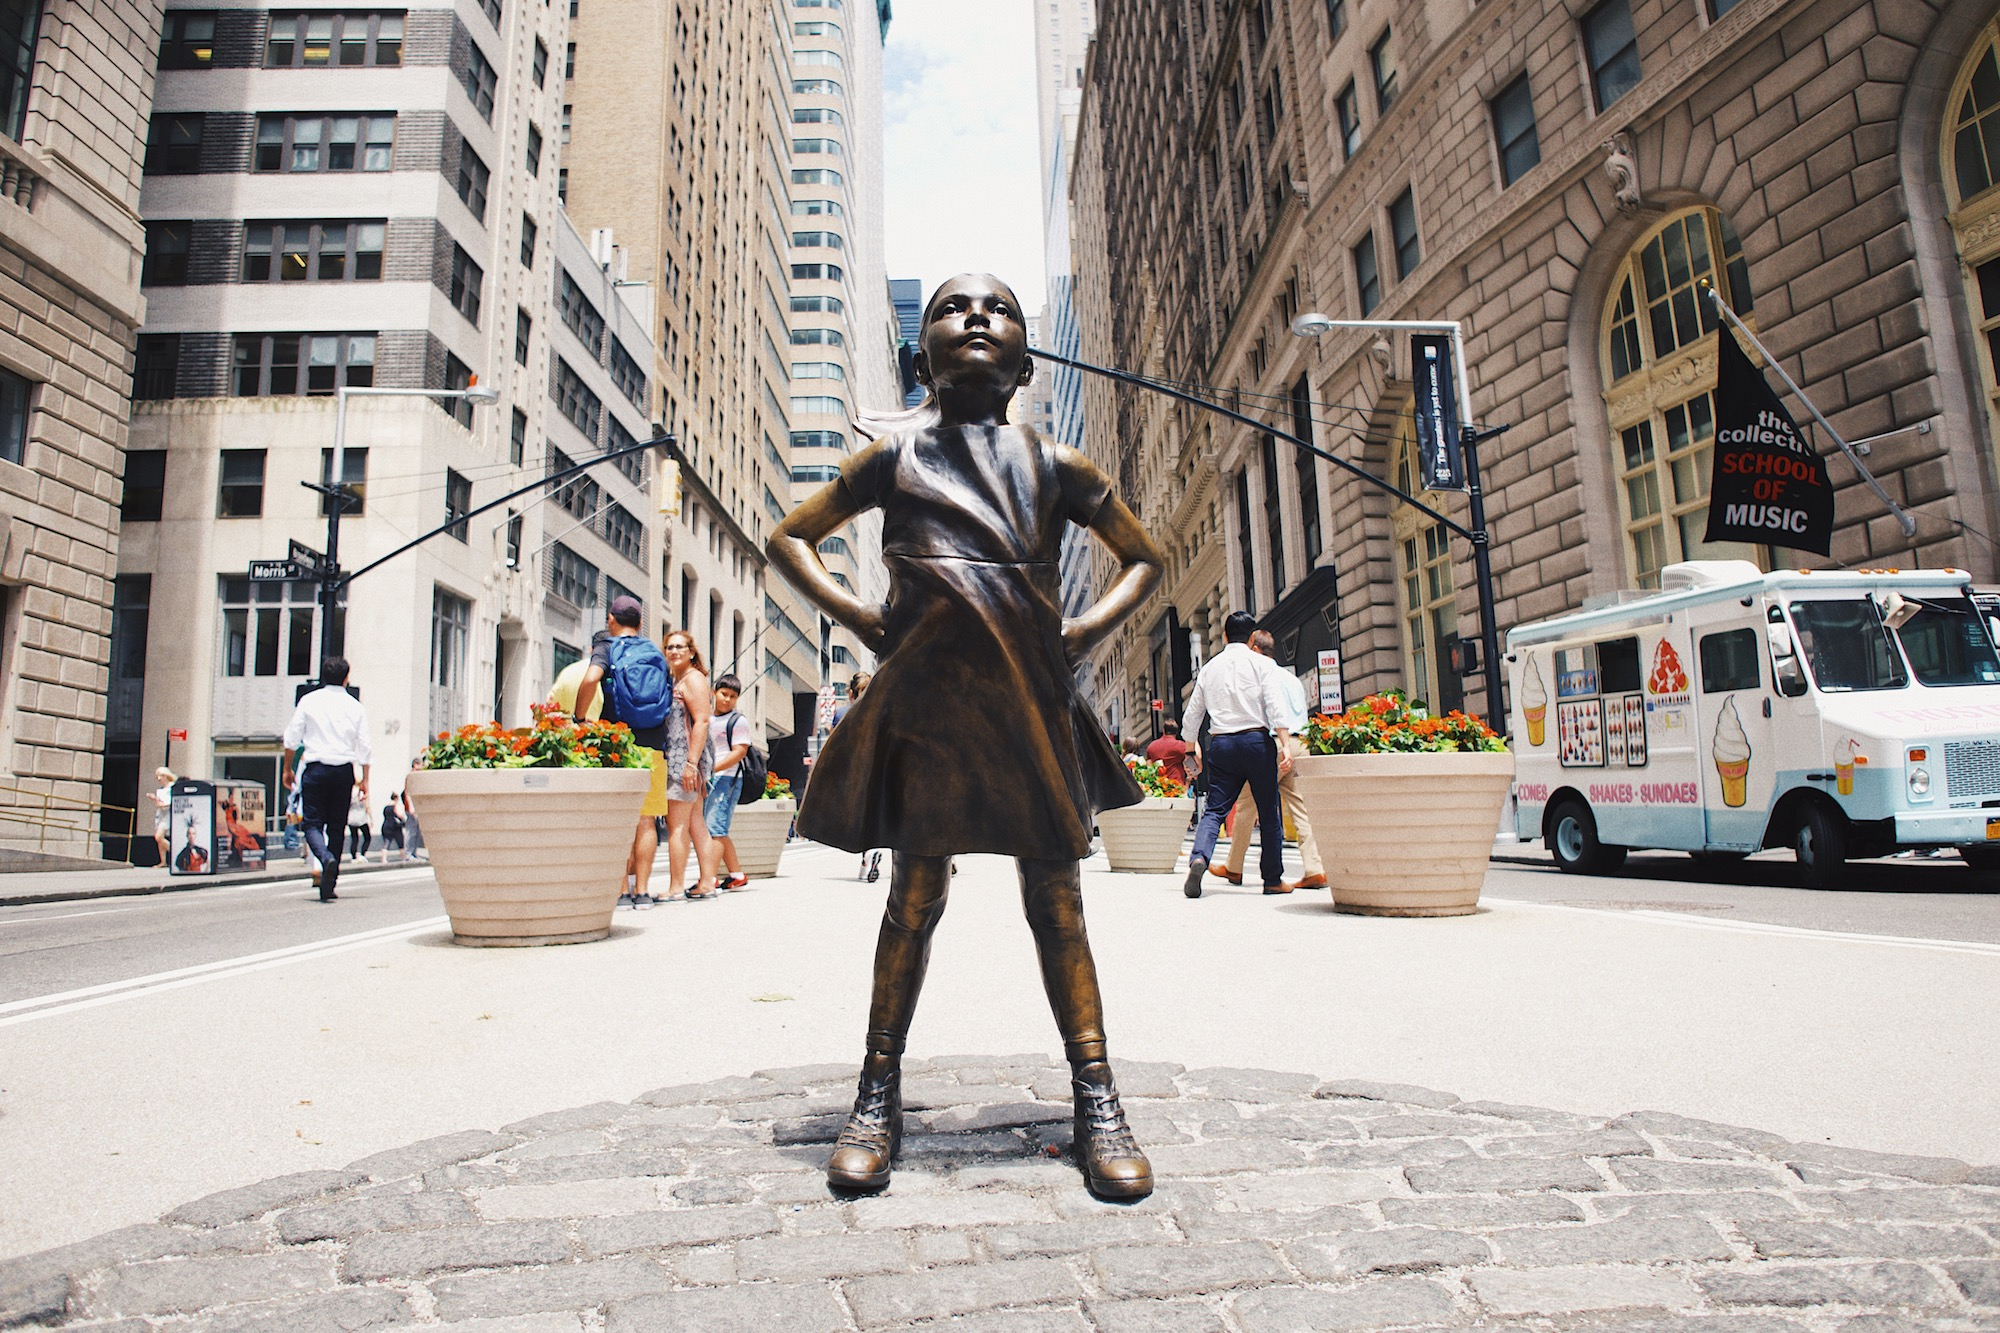 Fearless Girl - Standing opposite the Charging Bull statue is one of the Fearless Girl. A moving statement of the power women in leadership have and the impact they have on society. Definitely less crowded and more interesting than the bull!